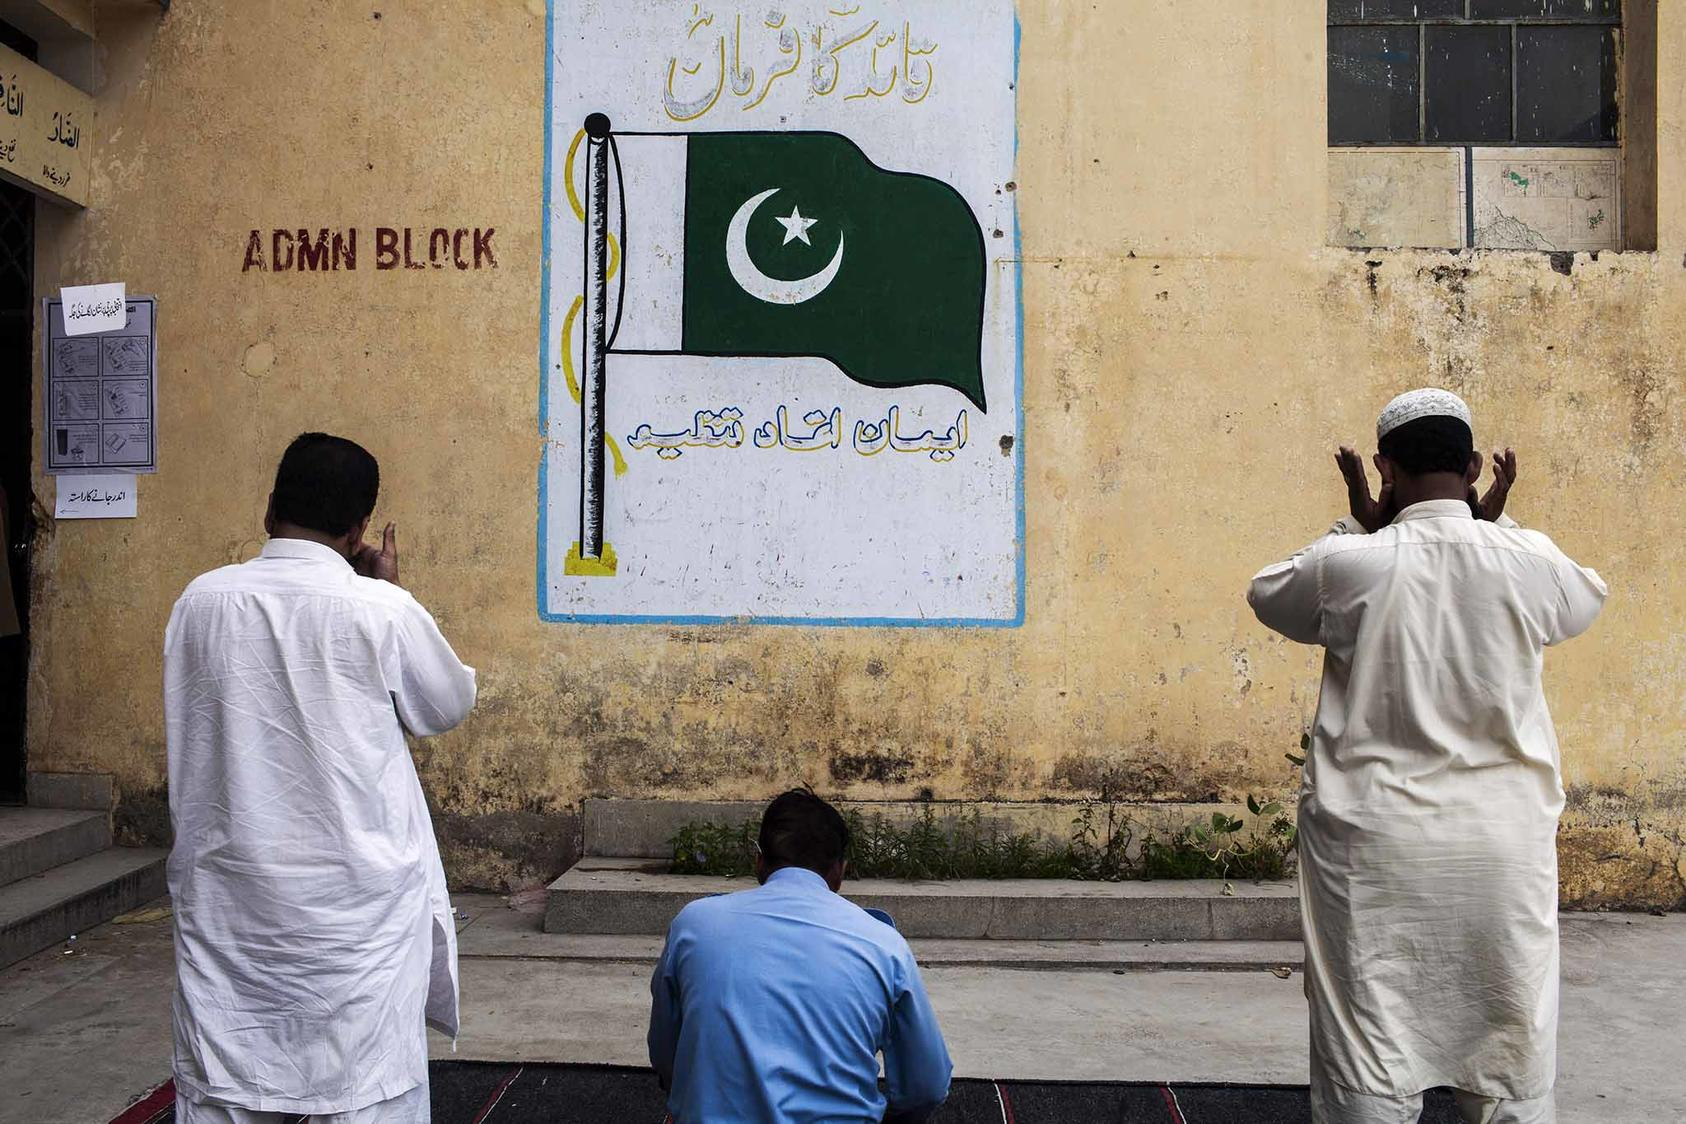 Men pray outside a polling station on Election Day in Islamabad, Pakistan in May 2013. (Diego Ibarra Sanchez/The New York Times)